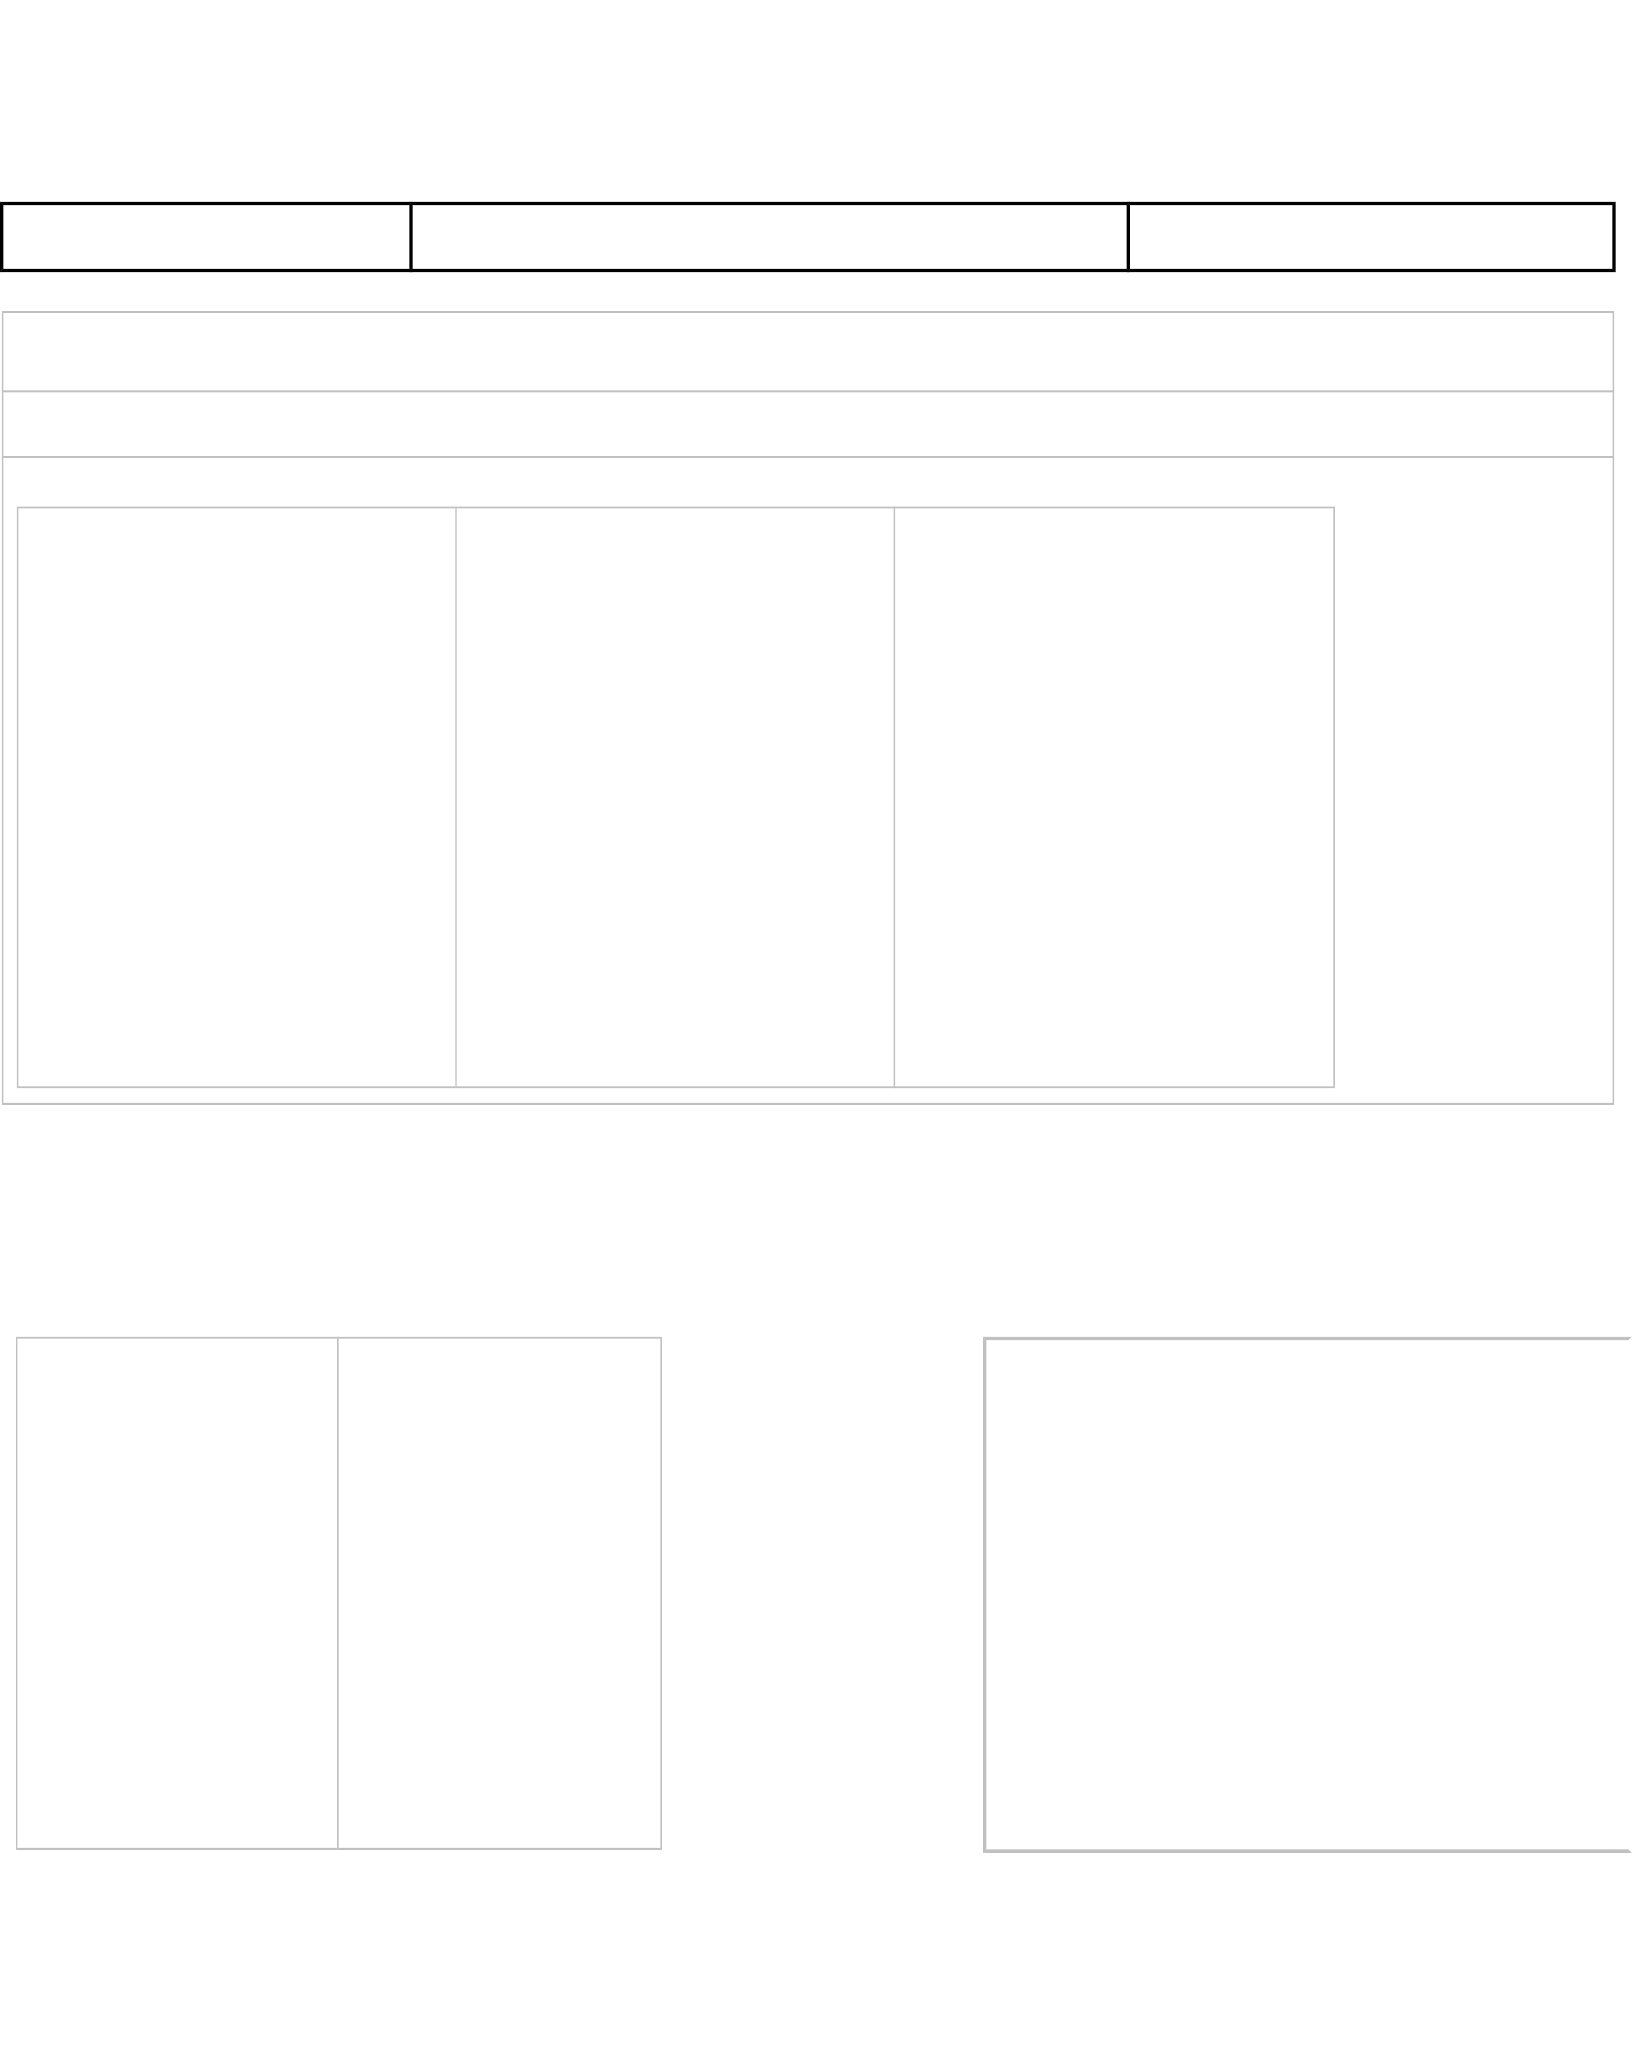 52 Blank Voting Template